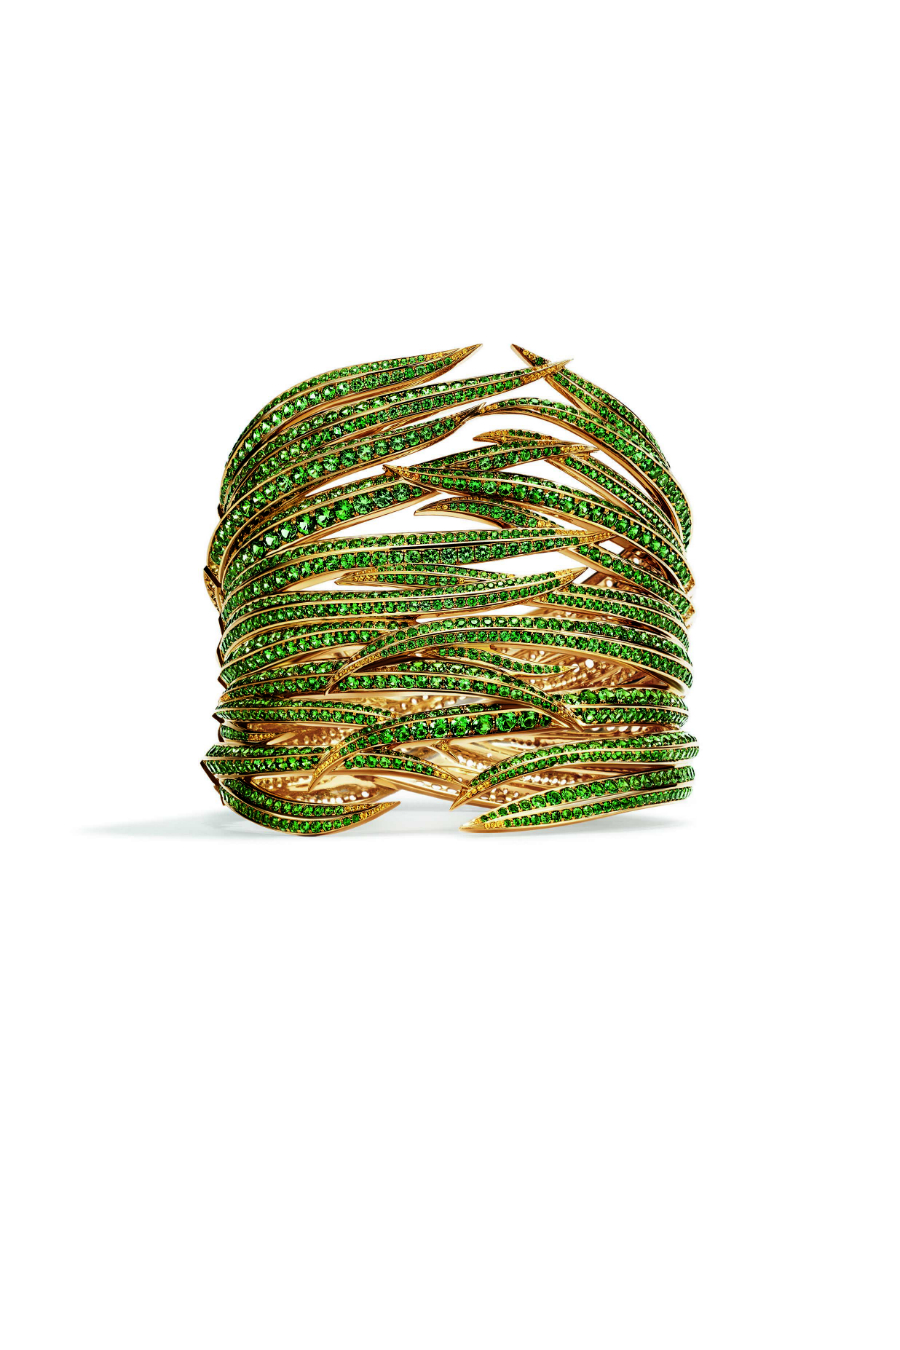 75379e3249b7 Bracelet in 18k yellow gold with tsavorites and yellow sapphires